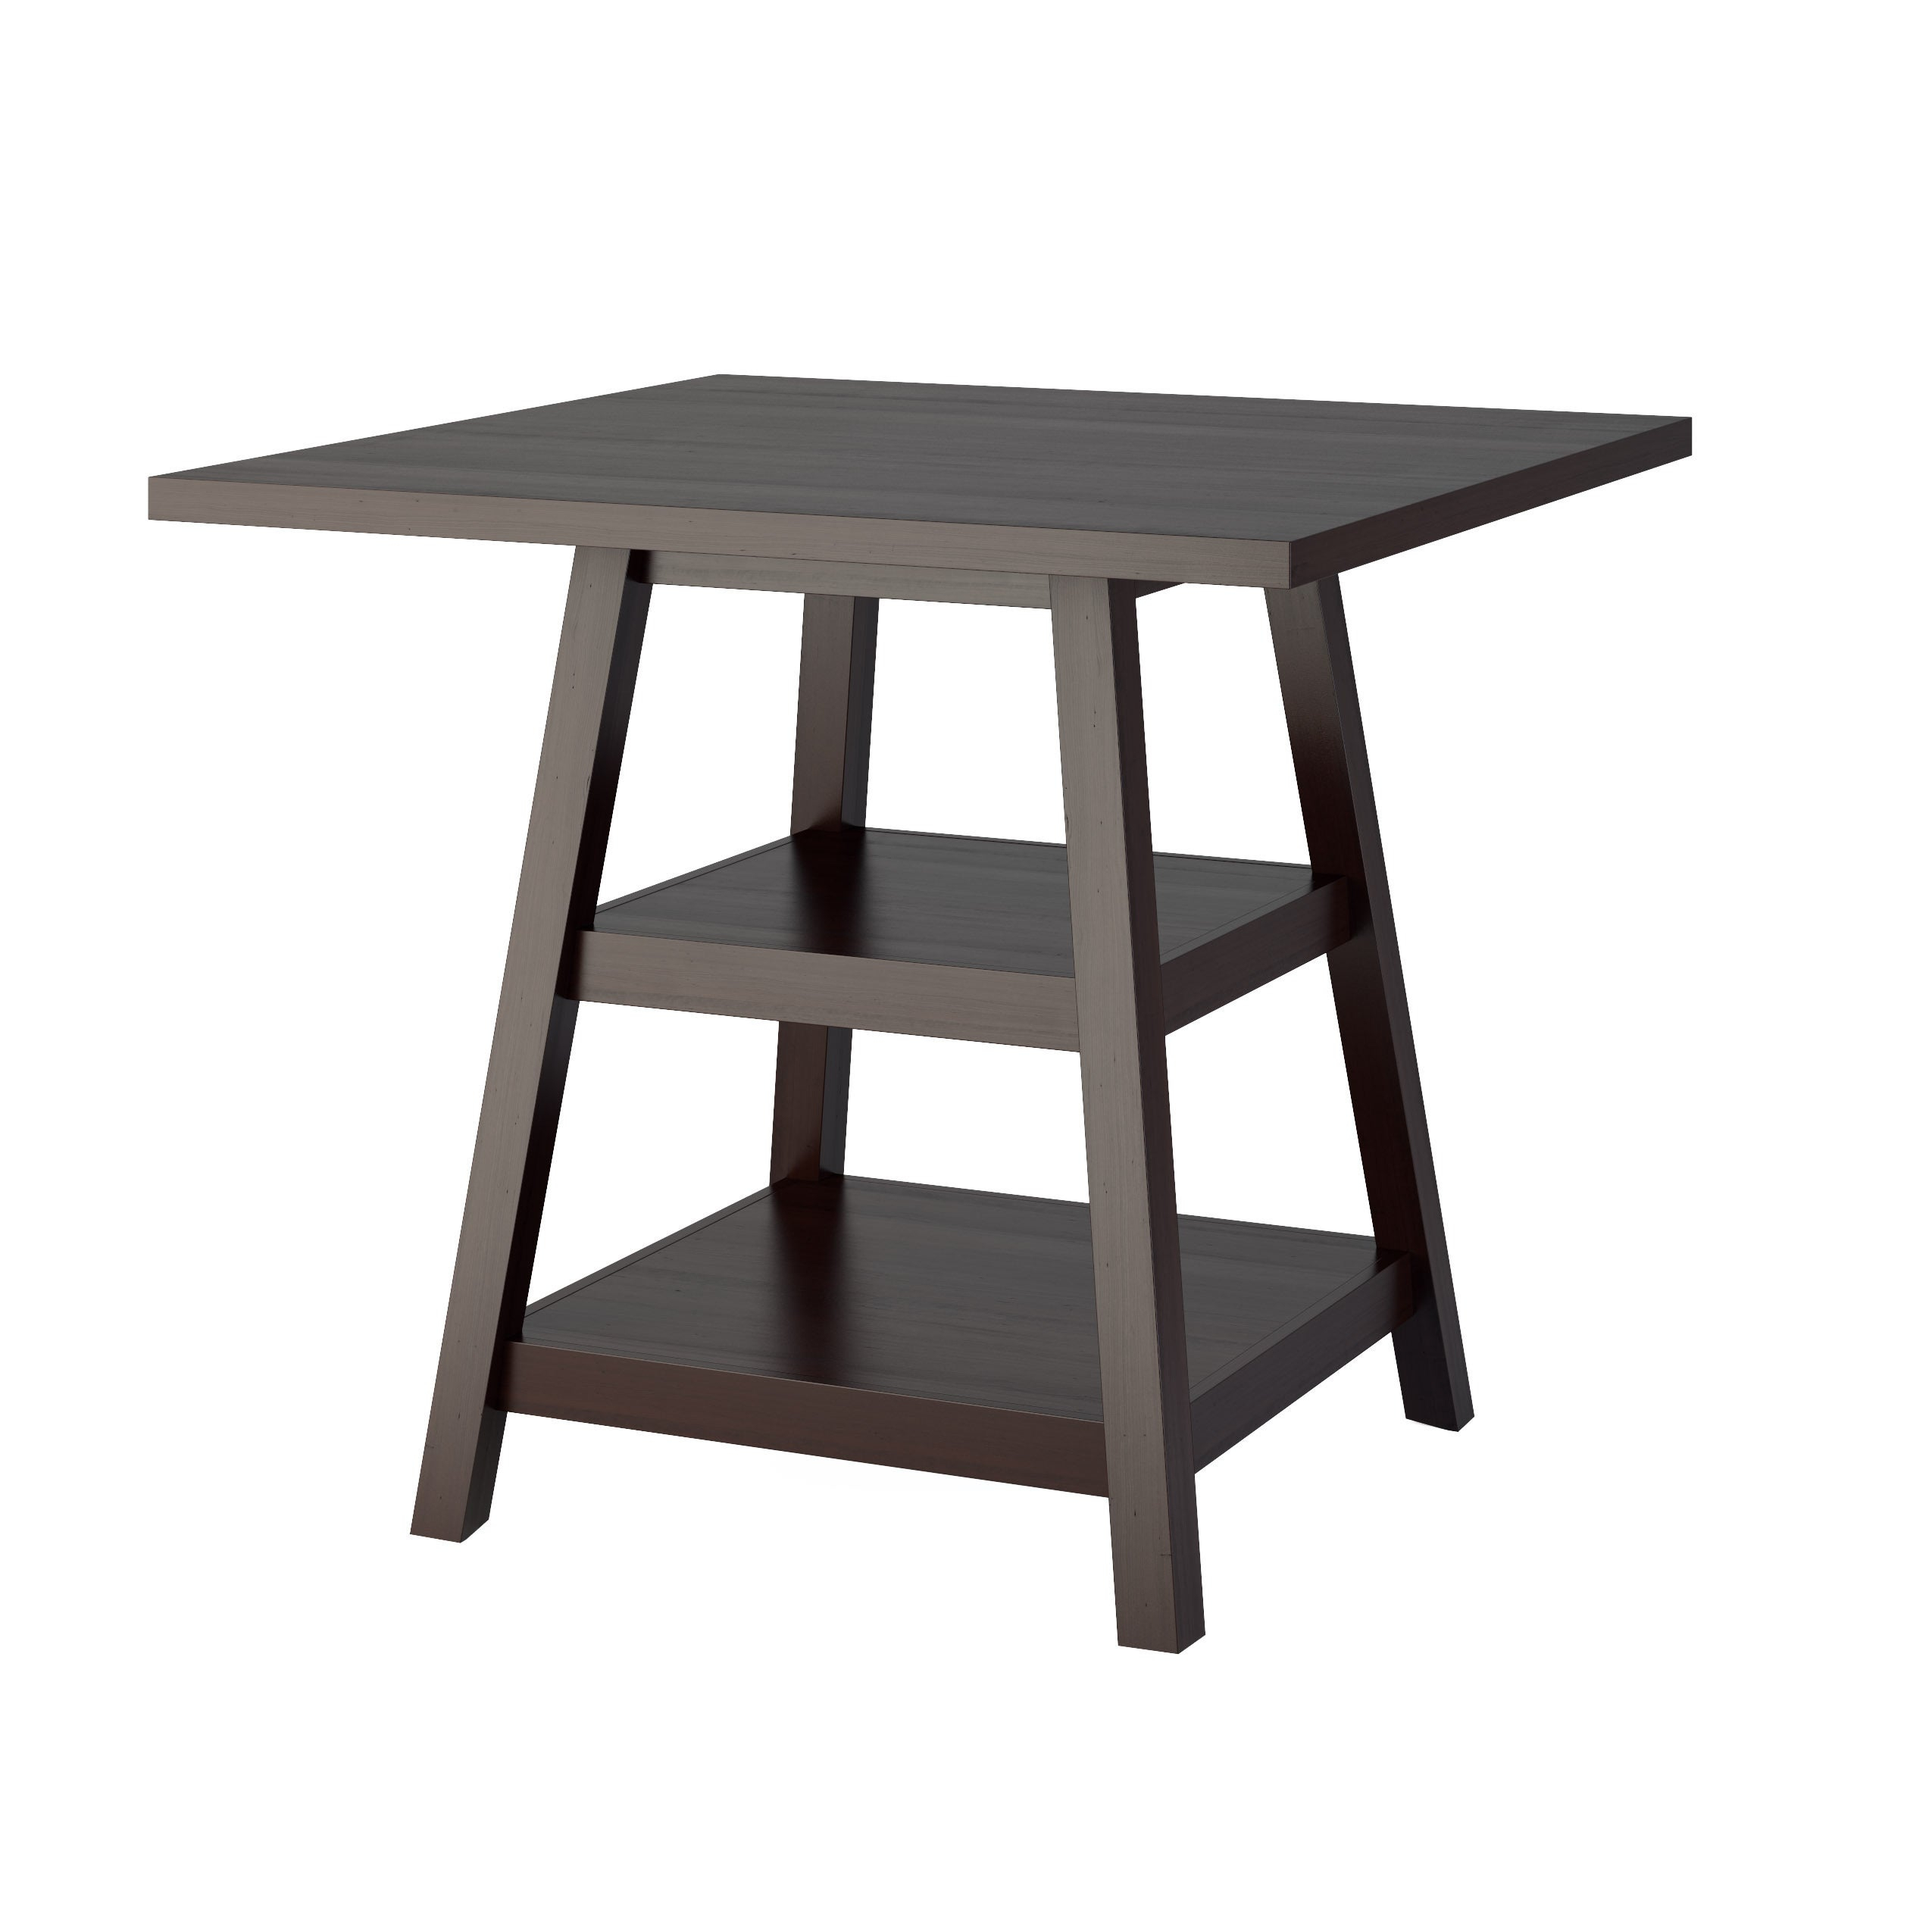 Carson Carrington Fettsater 36 Inch Counter Height Cappuccino Dining Table Within Latest Carson Counter Height Tables (View 19 of 25)